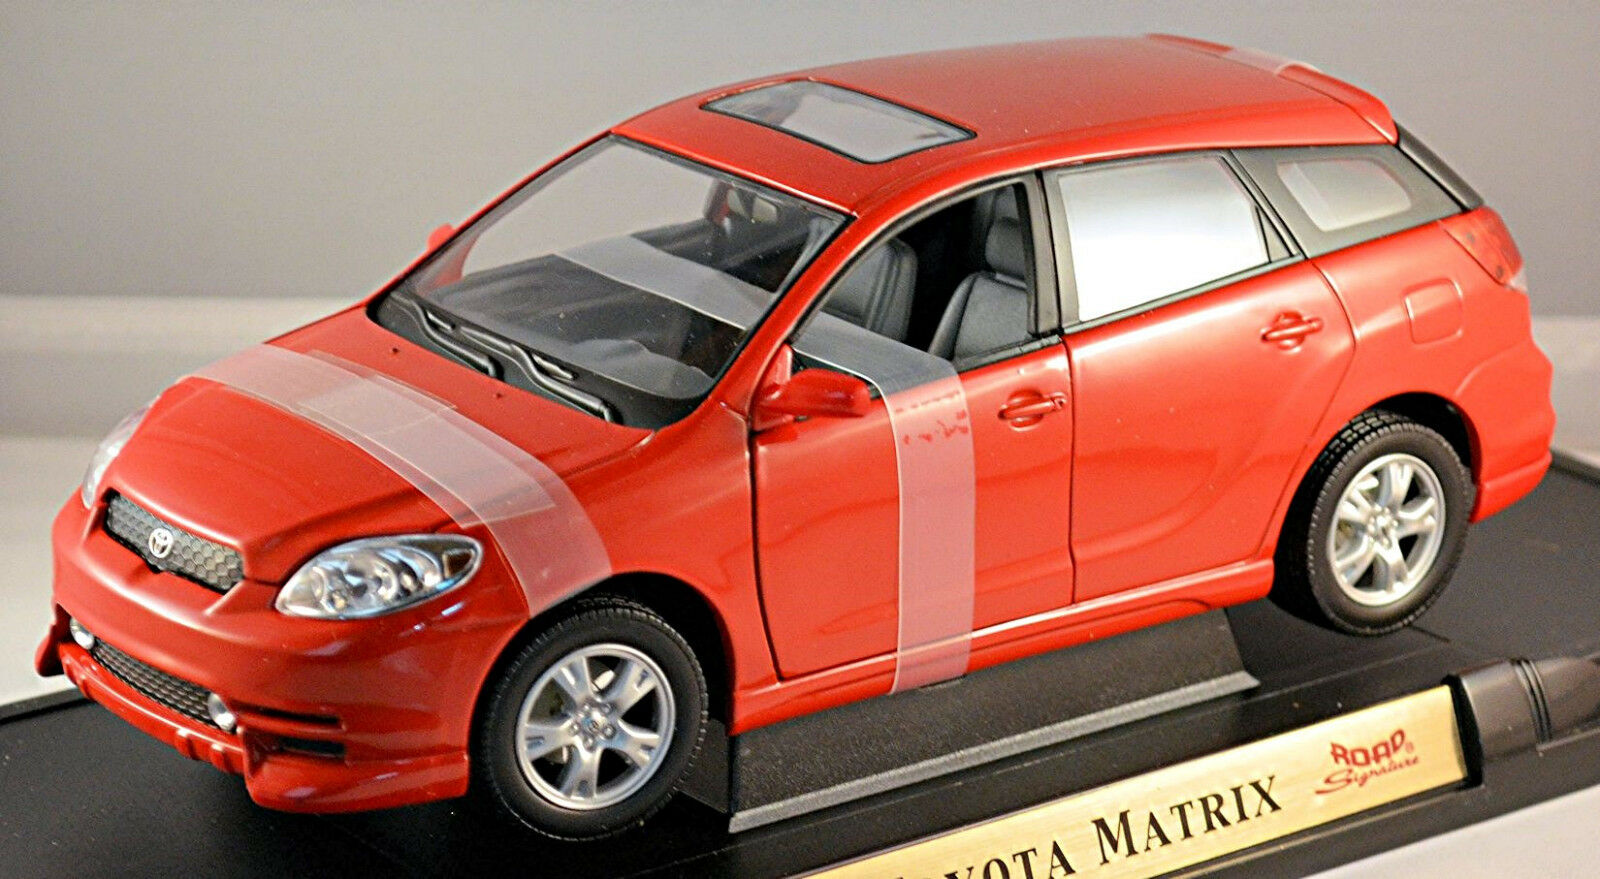 Toyota Matrice 1. Generation 2002-04 red Red 1 18 Yat Ming